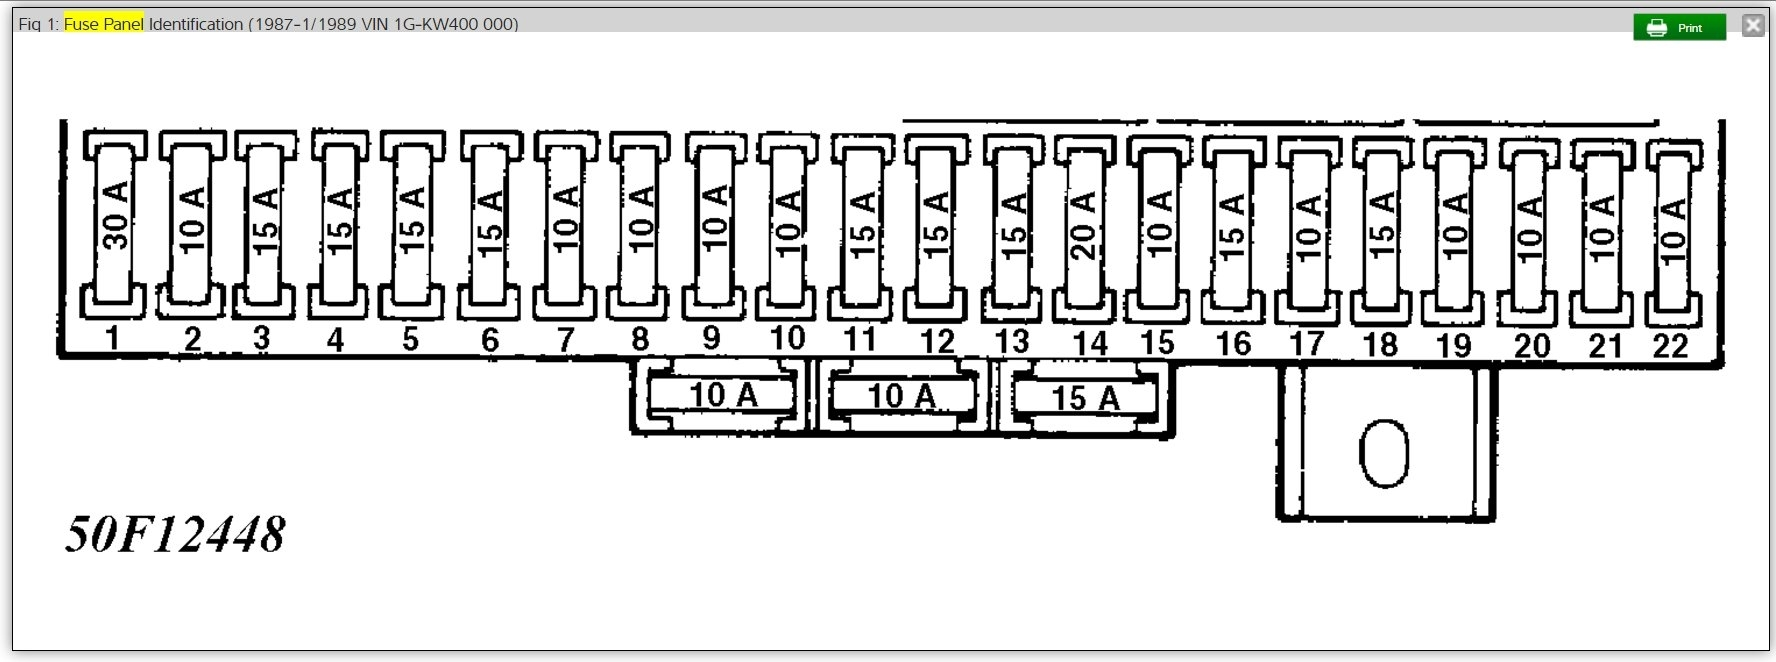 original fuse box diagram jetta2 cli fuse box diagram 10 amp fuse box at gsmportal.co